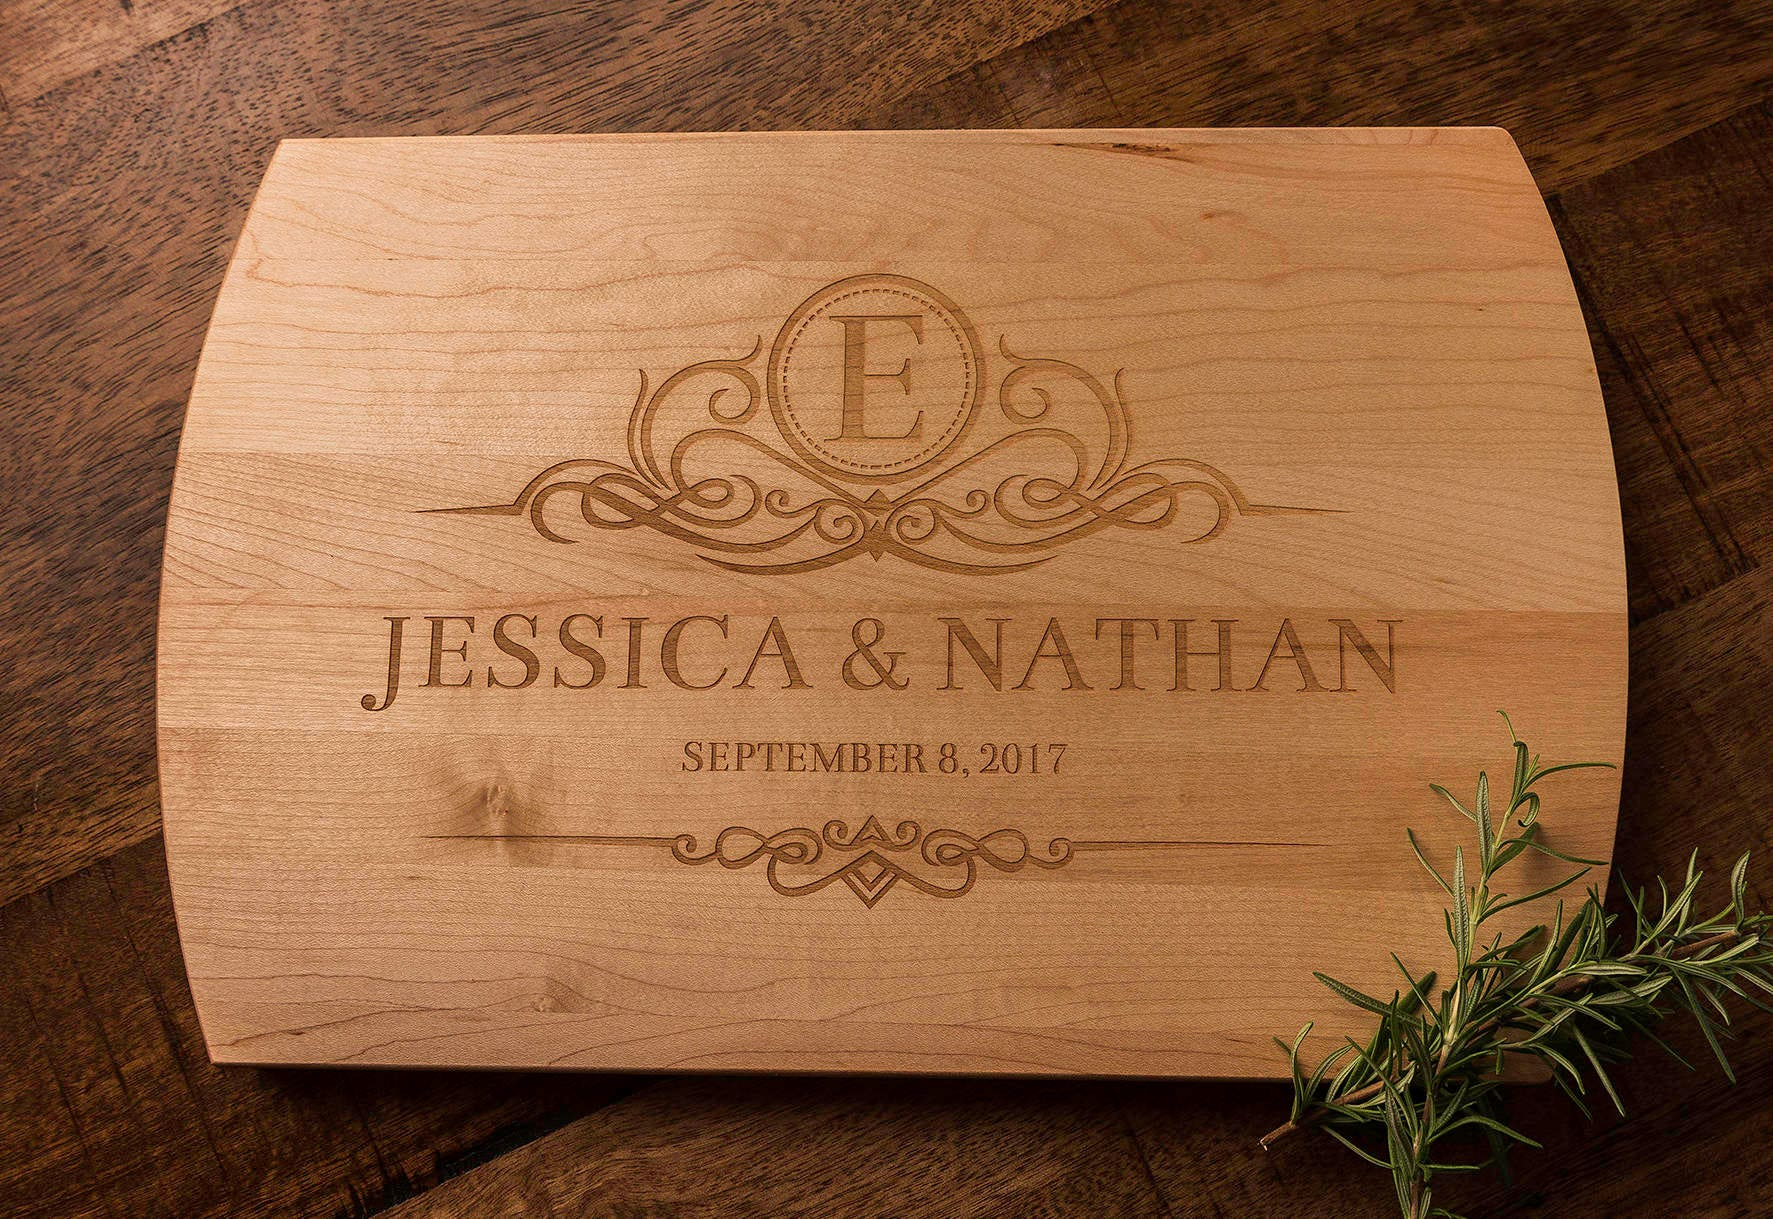 personalized gift cutting board wedding gift engagement gift